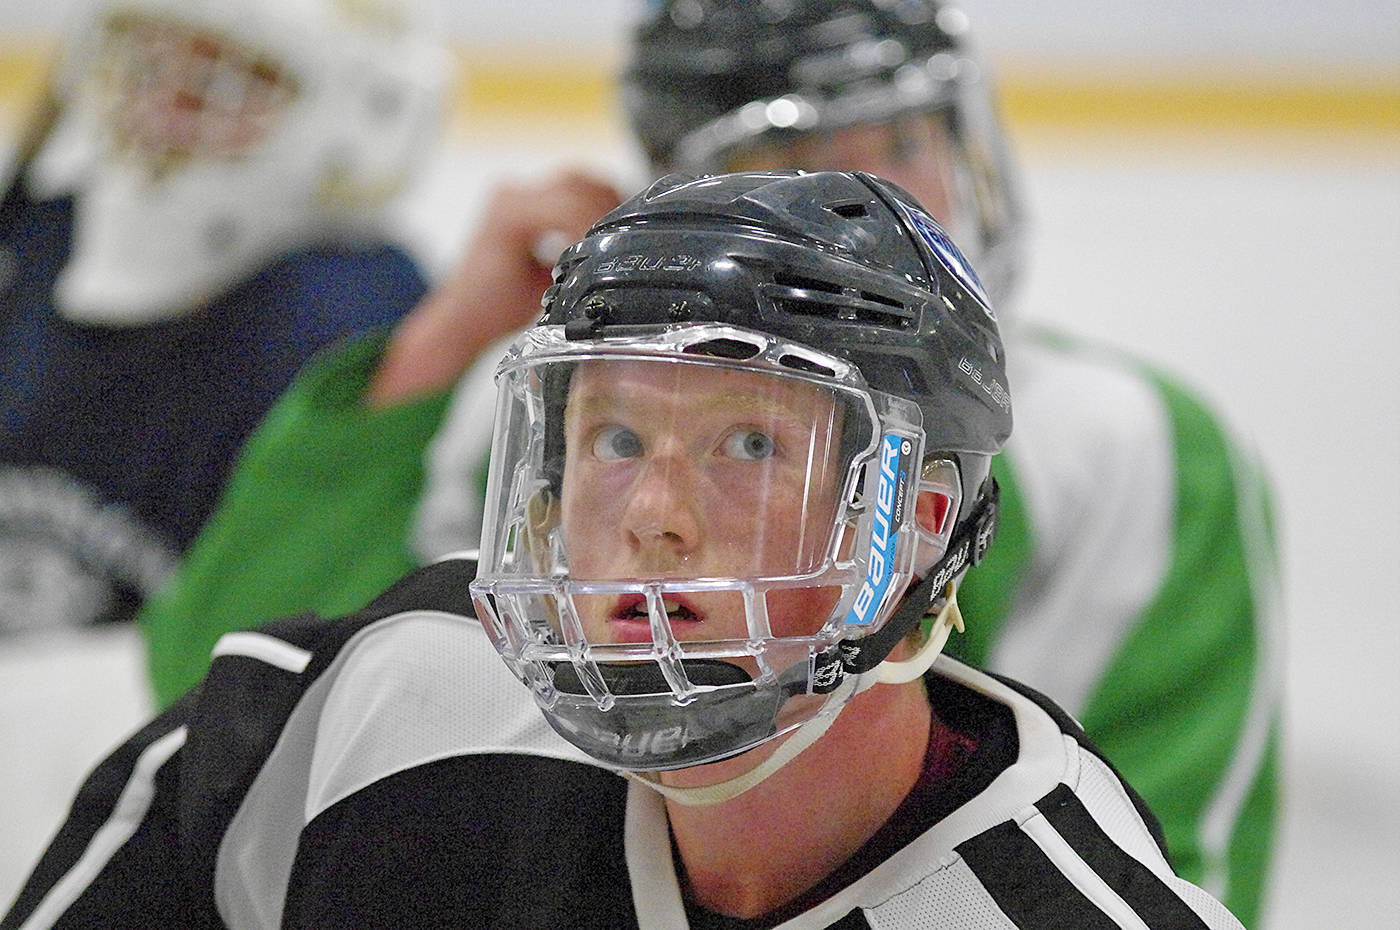 OPINION: Mandatory full face protection a smart move for hockey